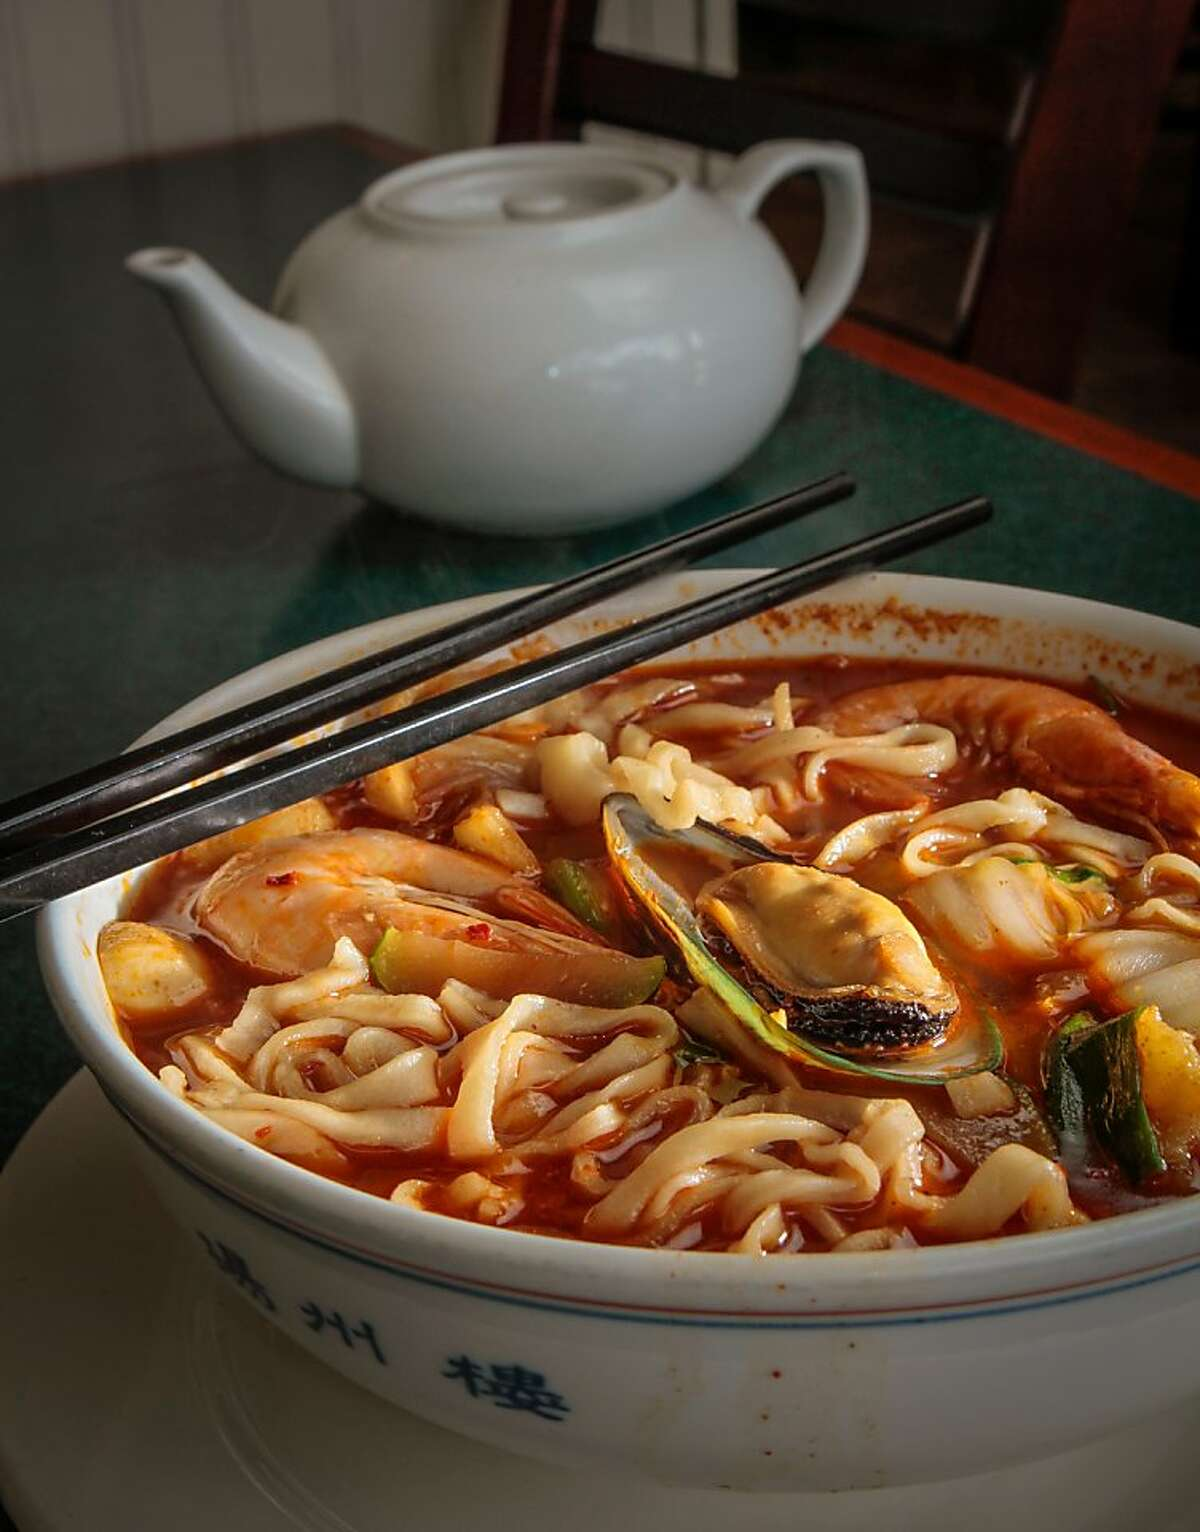 The Seafood Noodle Soup at Shanghai Winter Garden in Millbrae, Calif., is seen on Monday, March 25th, 2013.